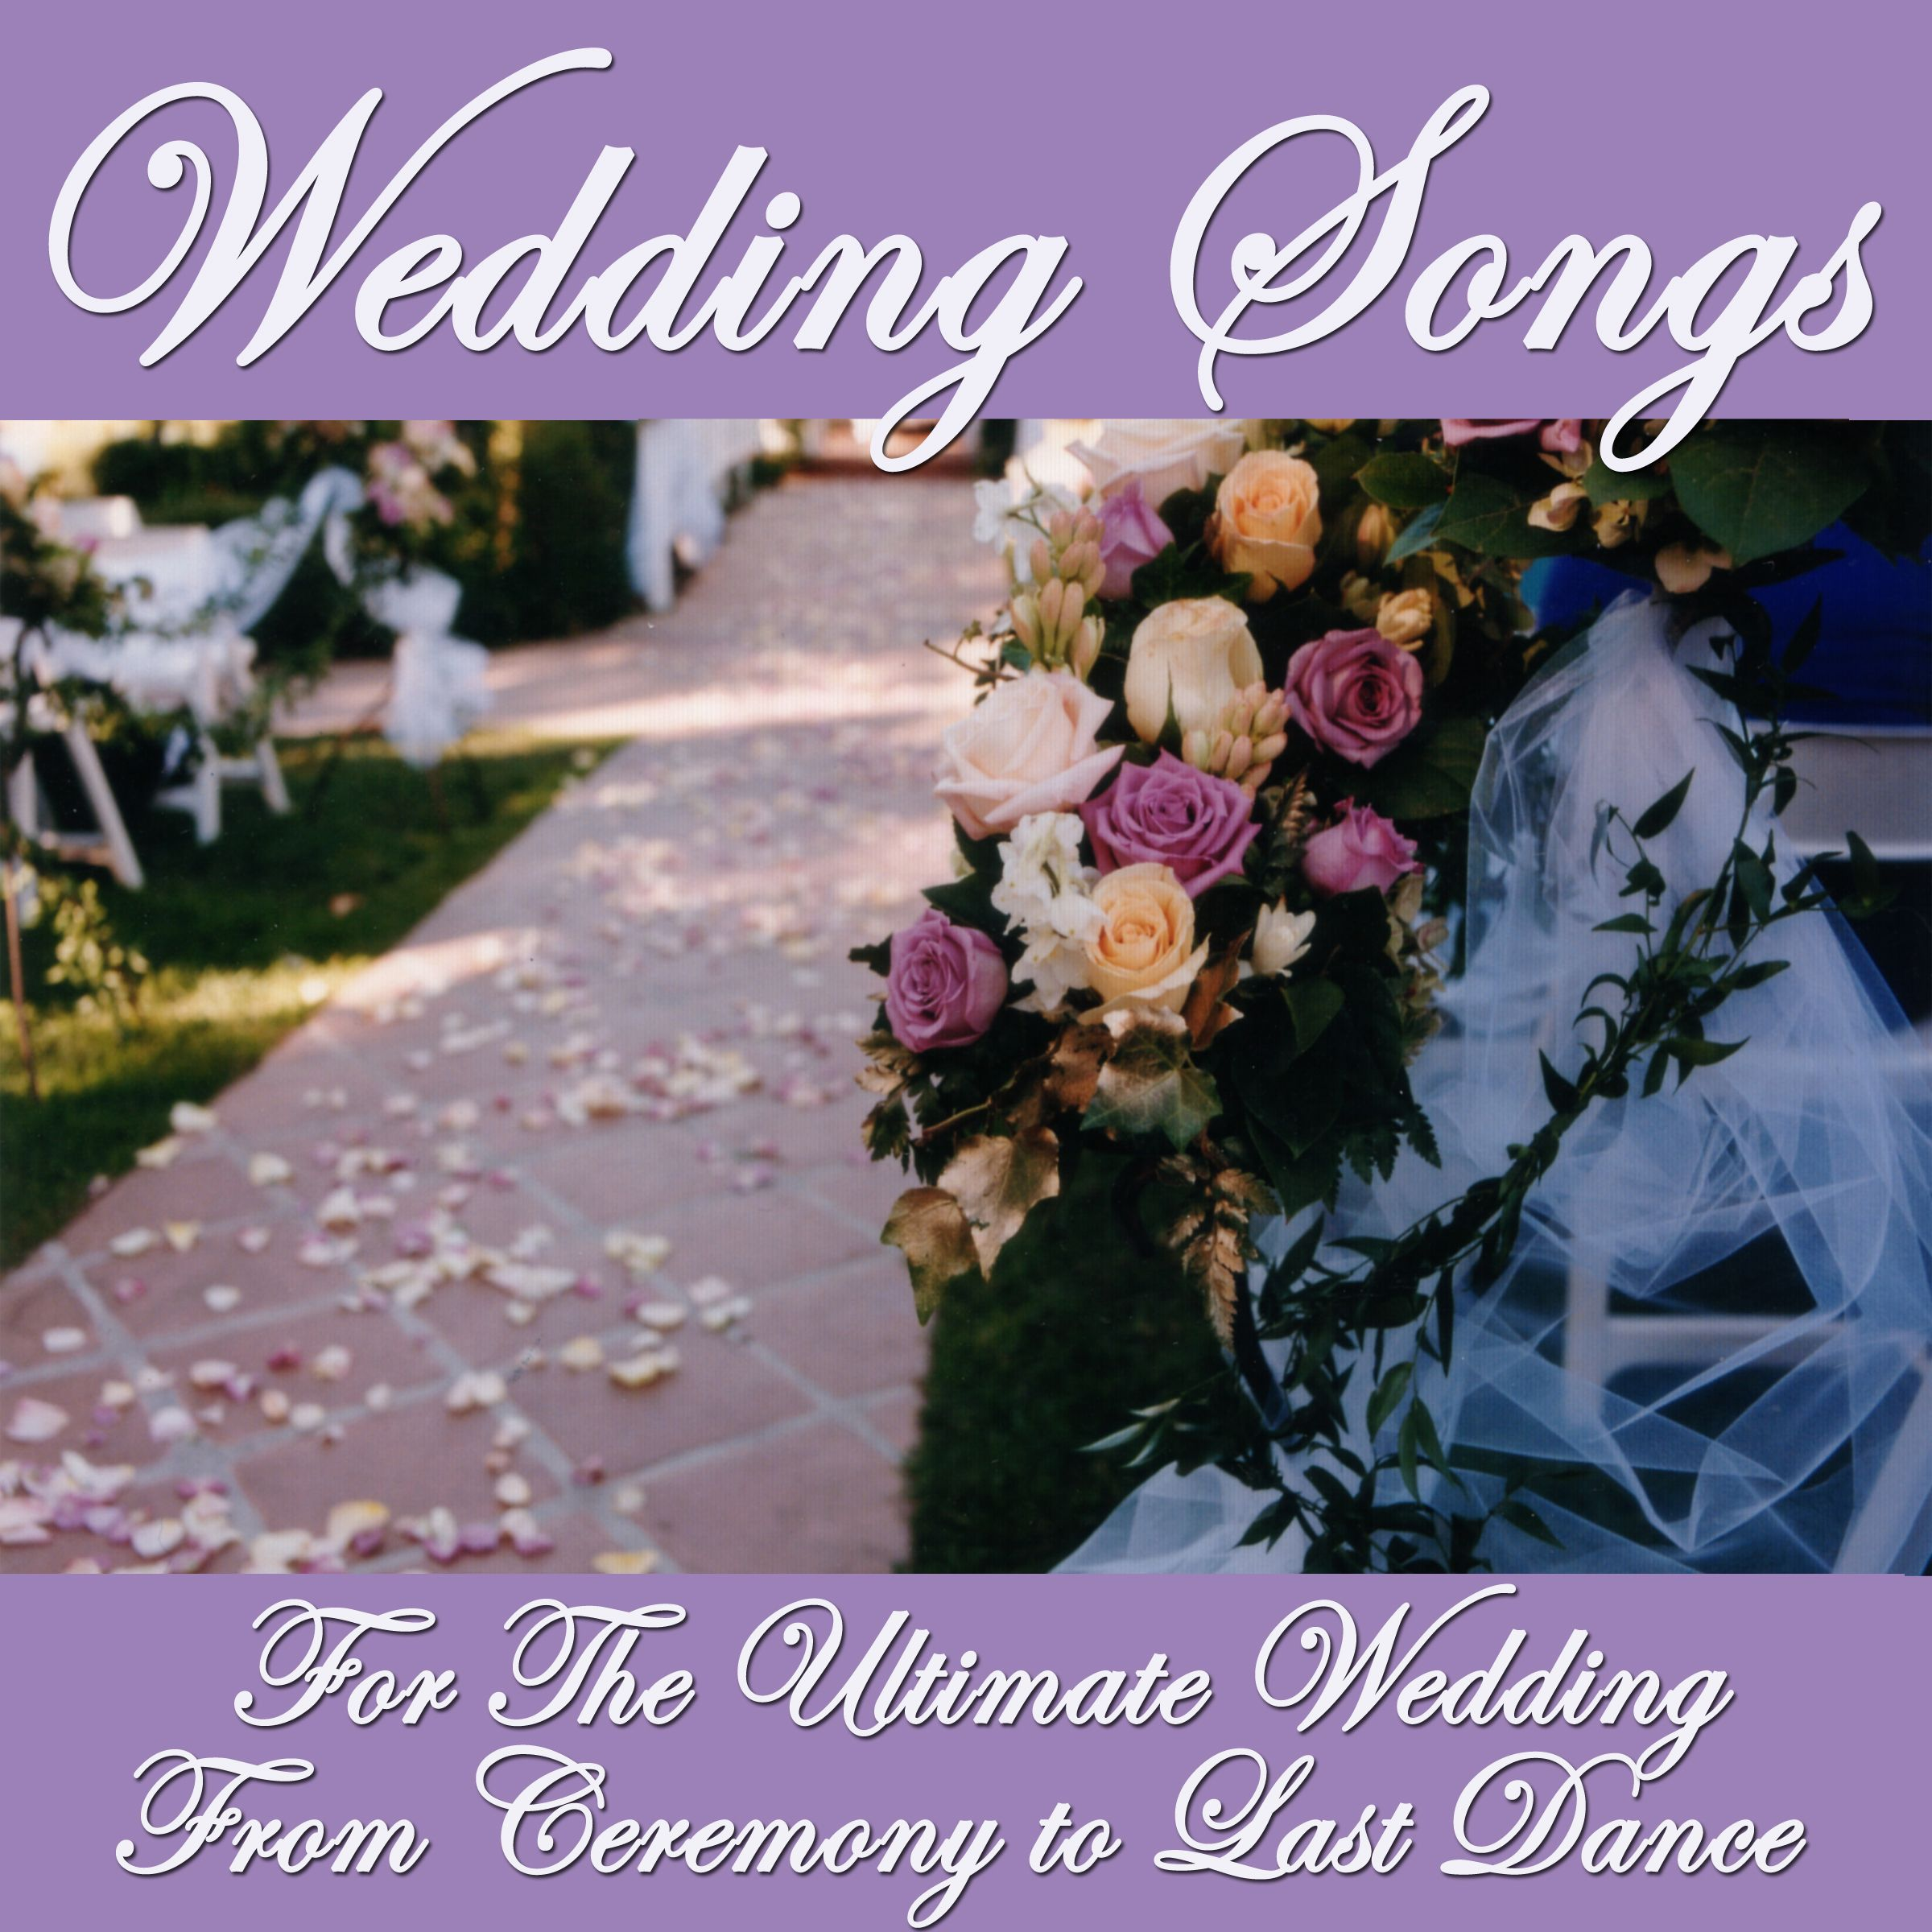 Wedding Songs For The Ultimate